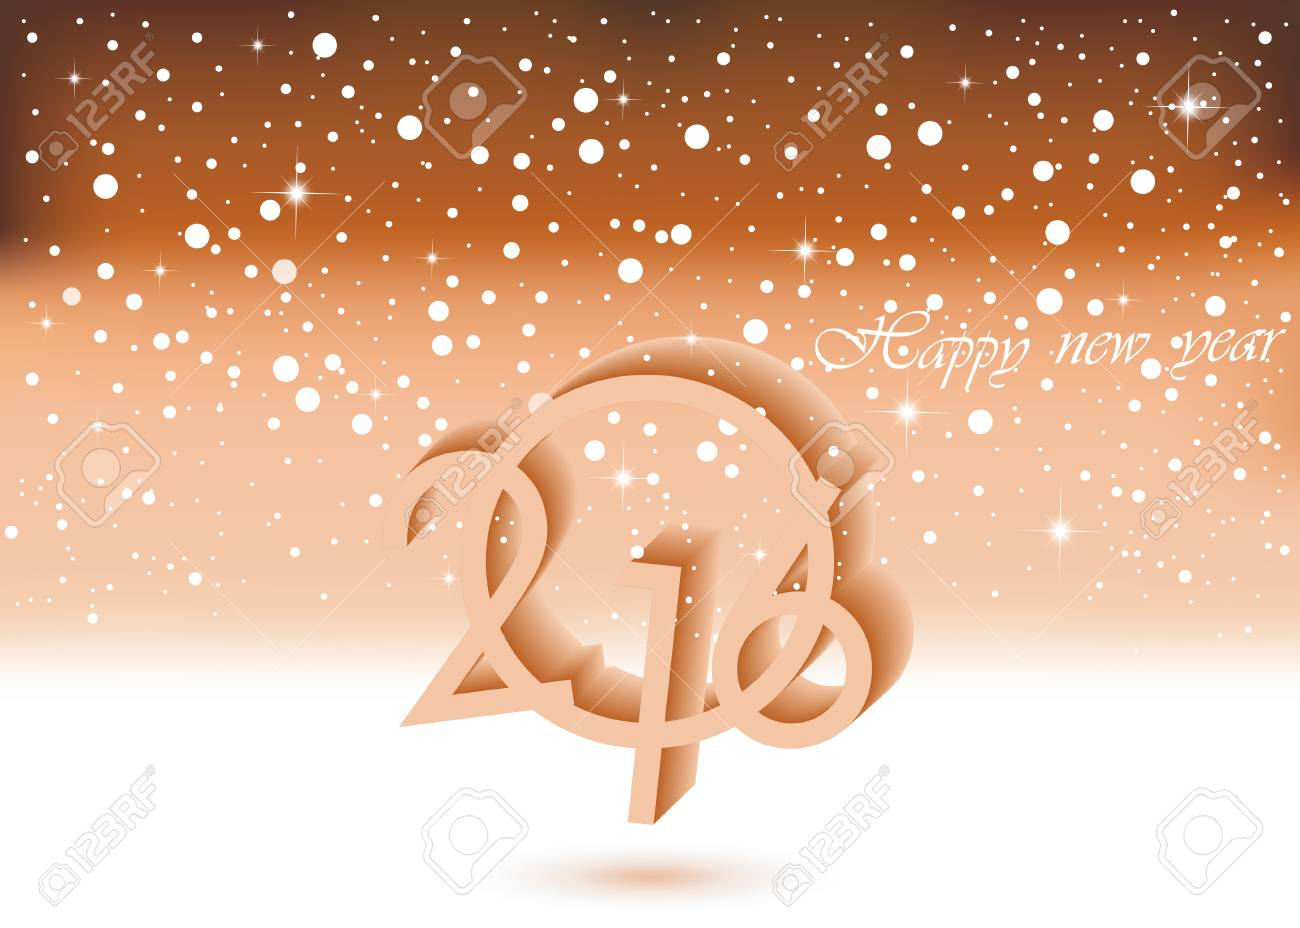 happy new year background for your invitation festive poster stock vector 46852953